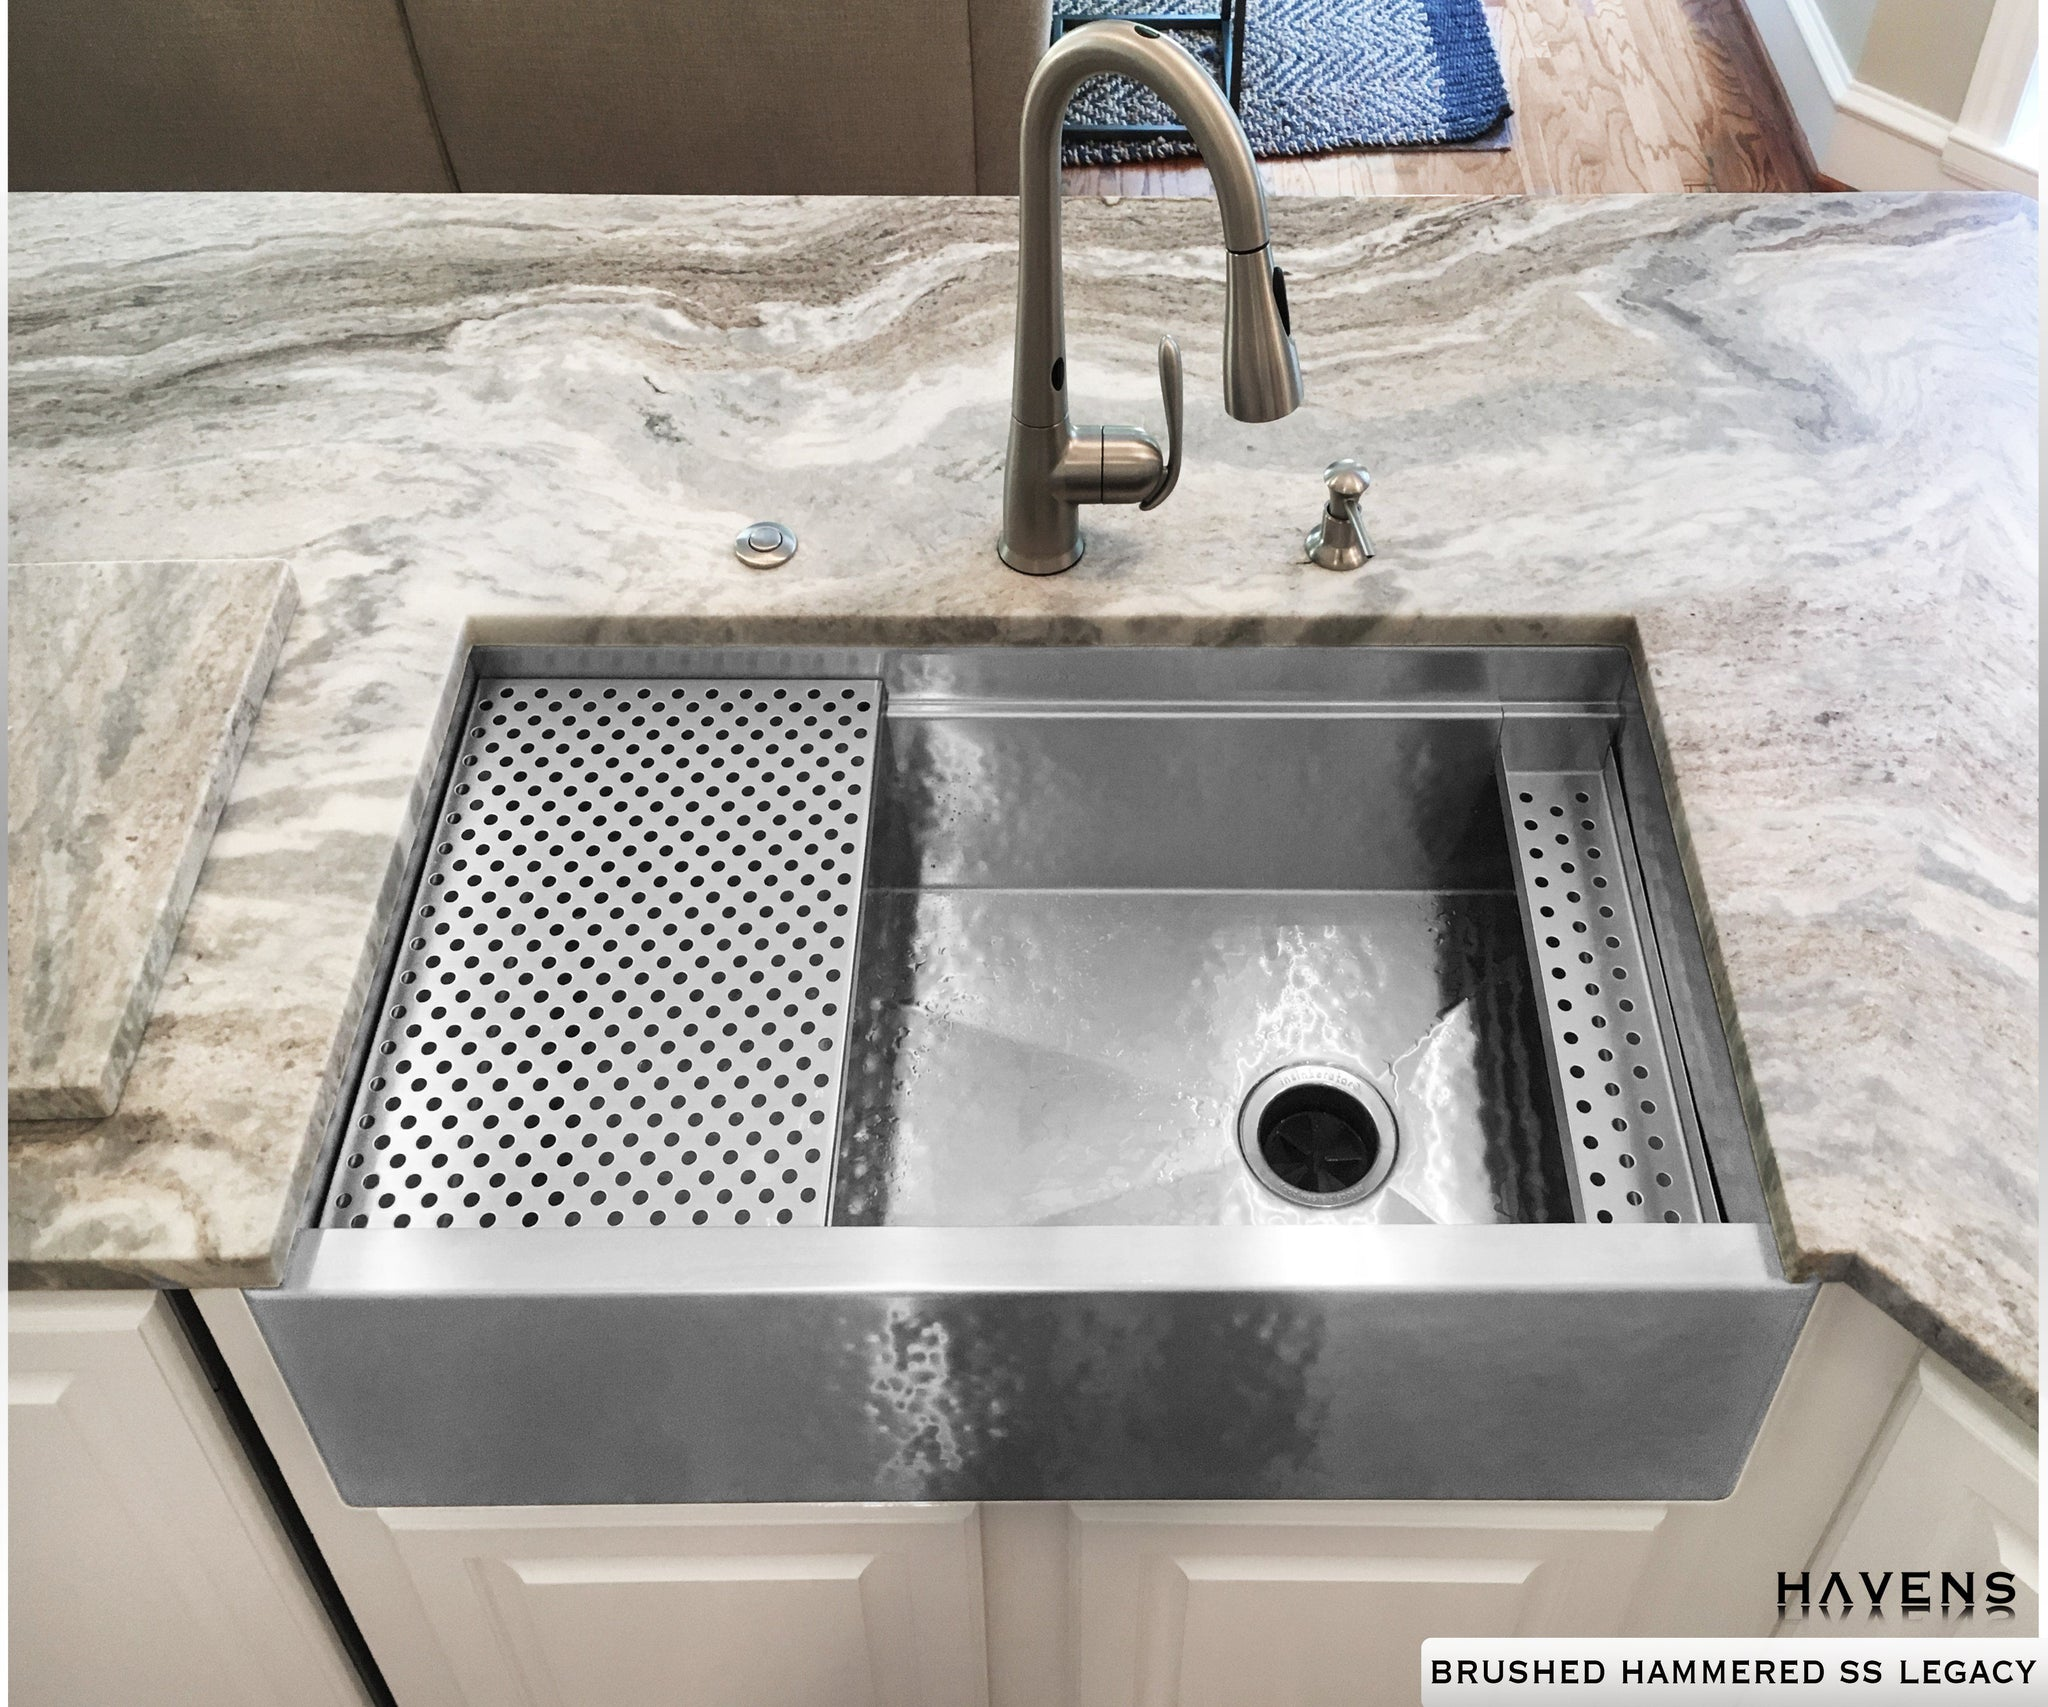 Hammered stainless steel farmhouse sink built from 16 gauge stainless steel. Brushed hammered finish on a workstation Legacy sink by Havens.